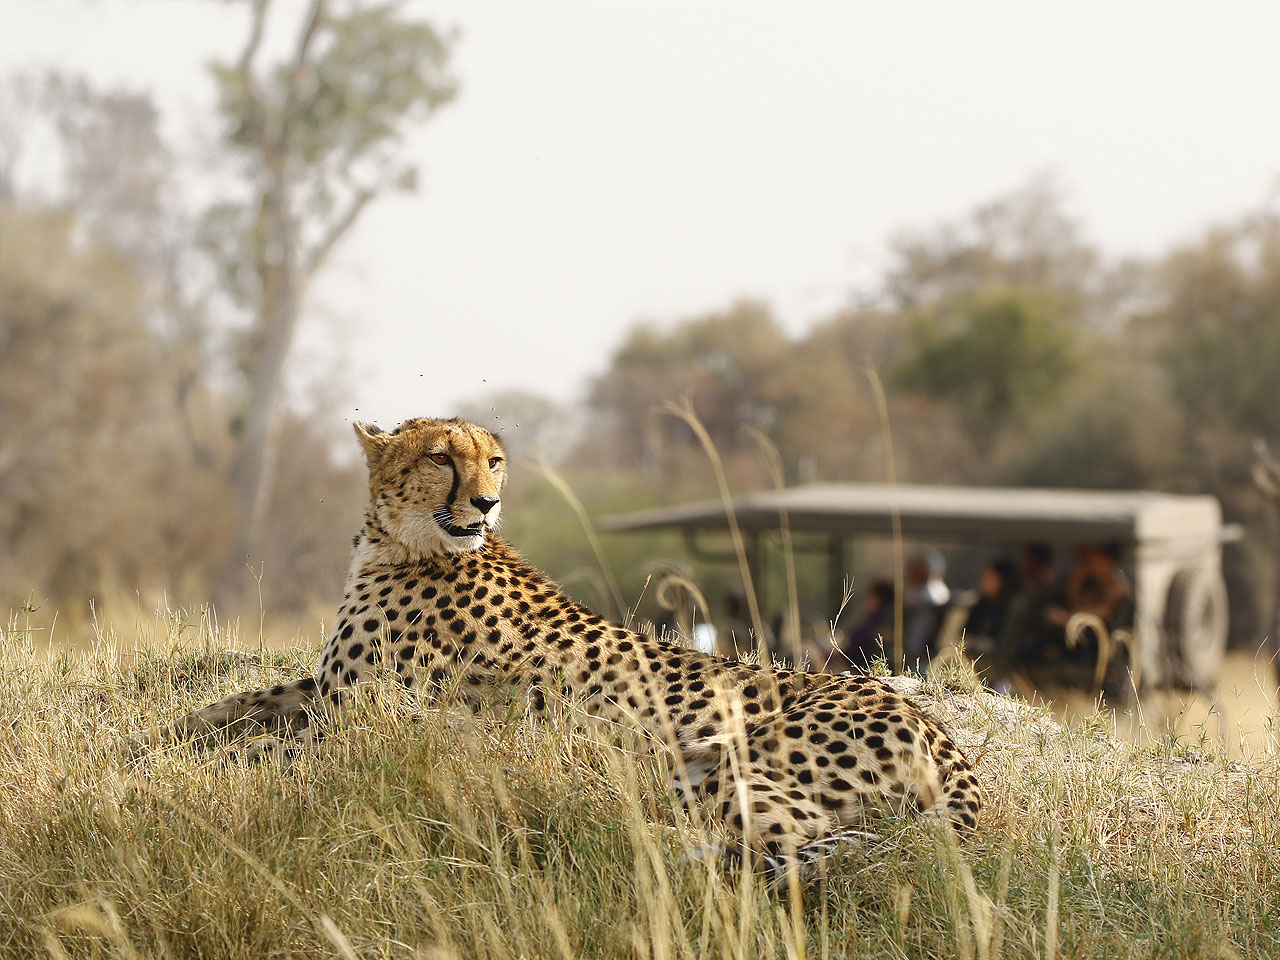 Close up of a cheetah lying on a grassy mound with a safari vehicle vaguely in the background.